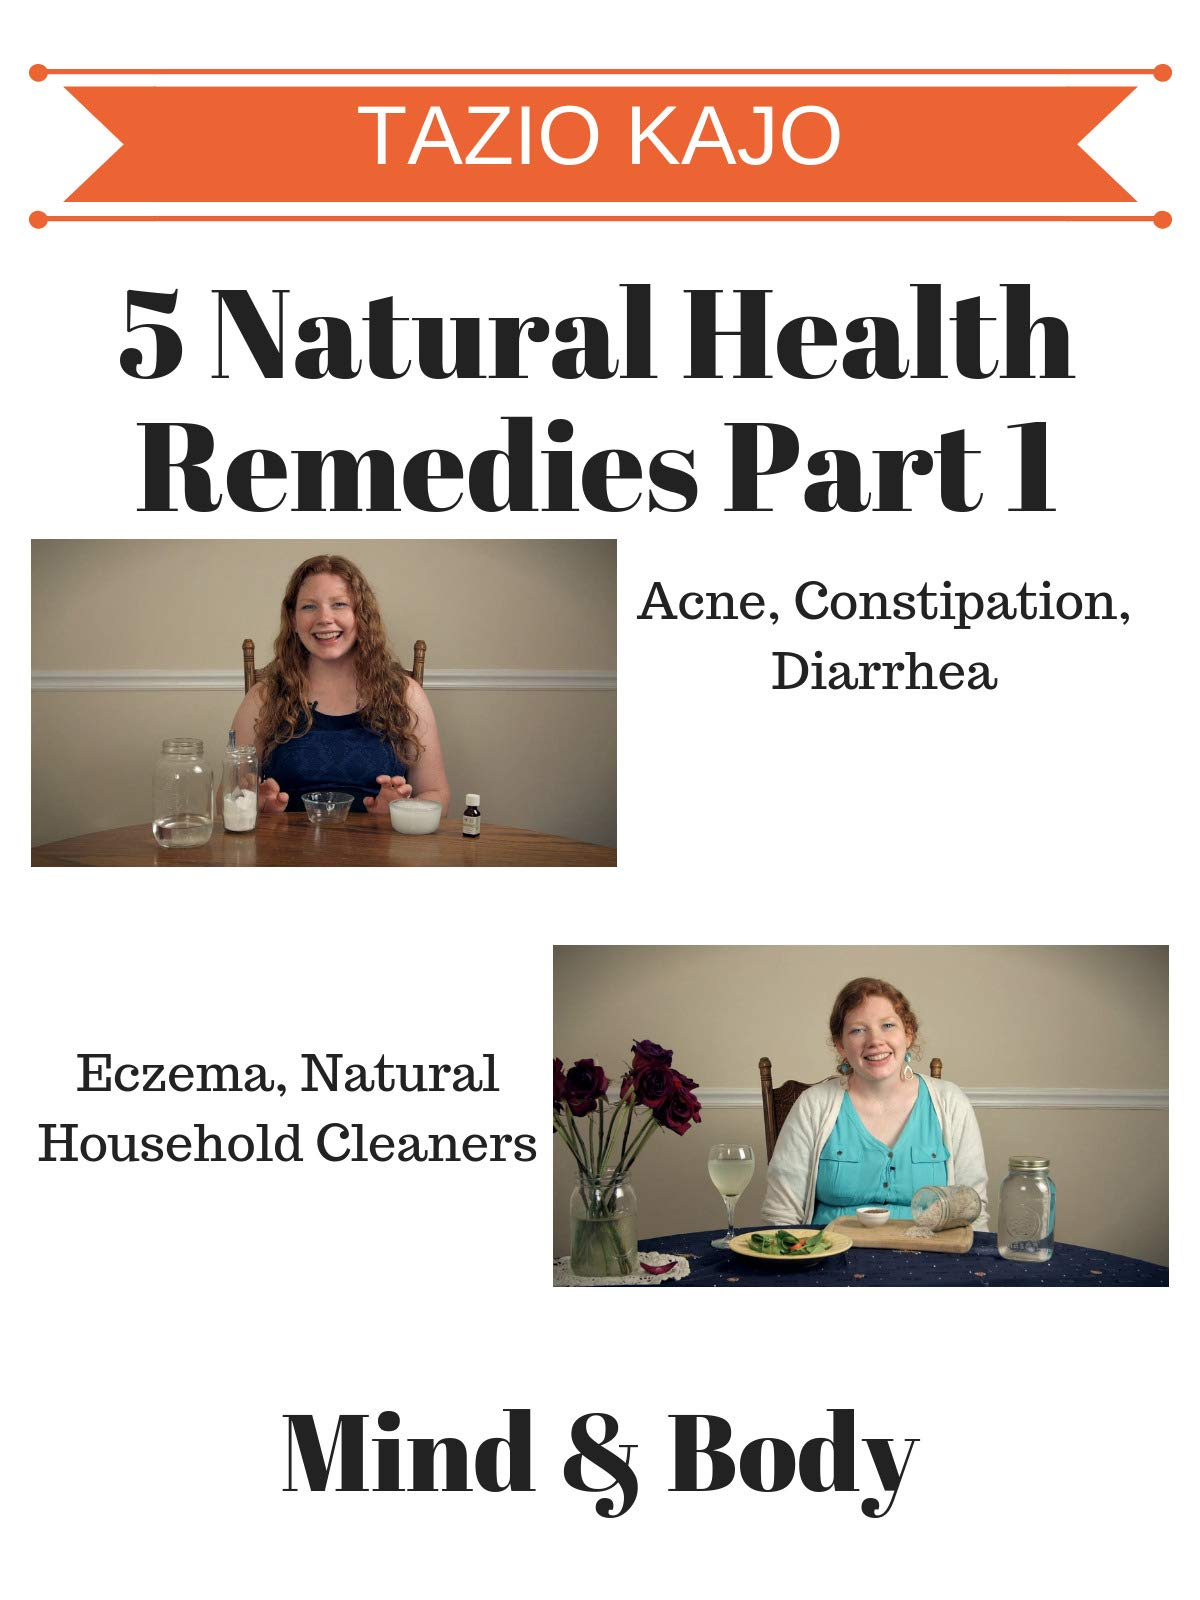 5 Natural Health Remedies Part 1